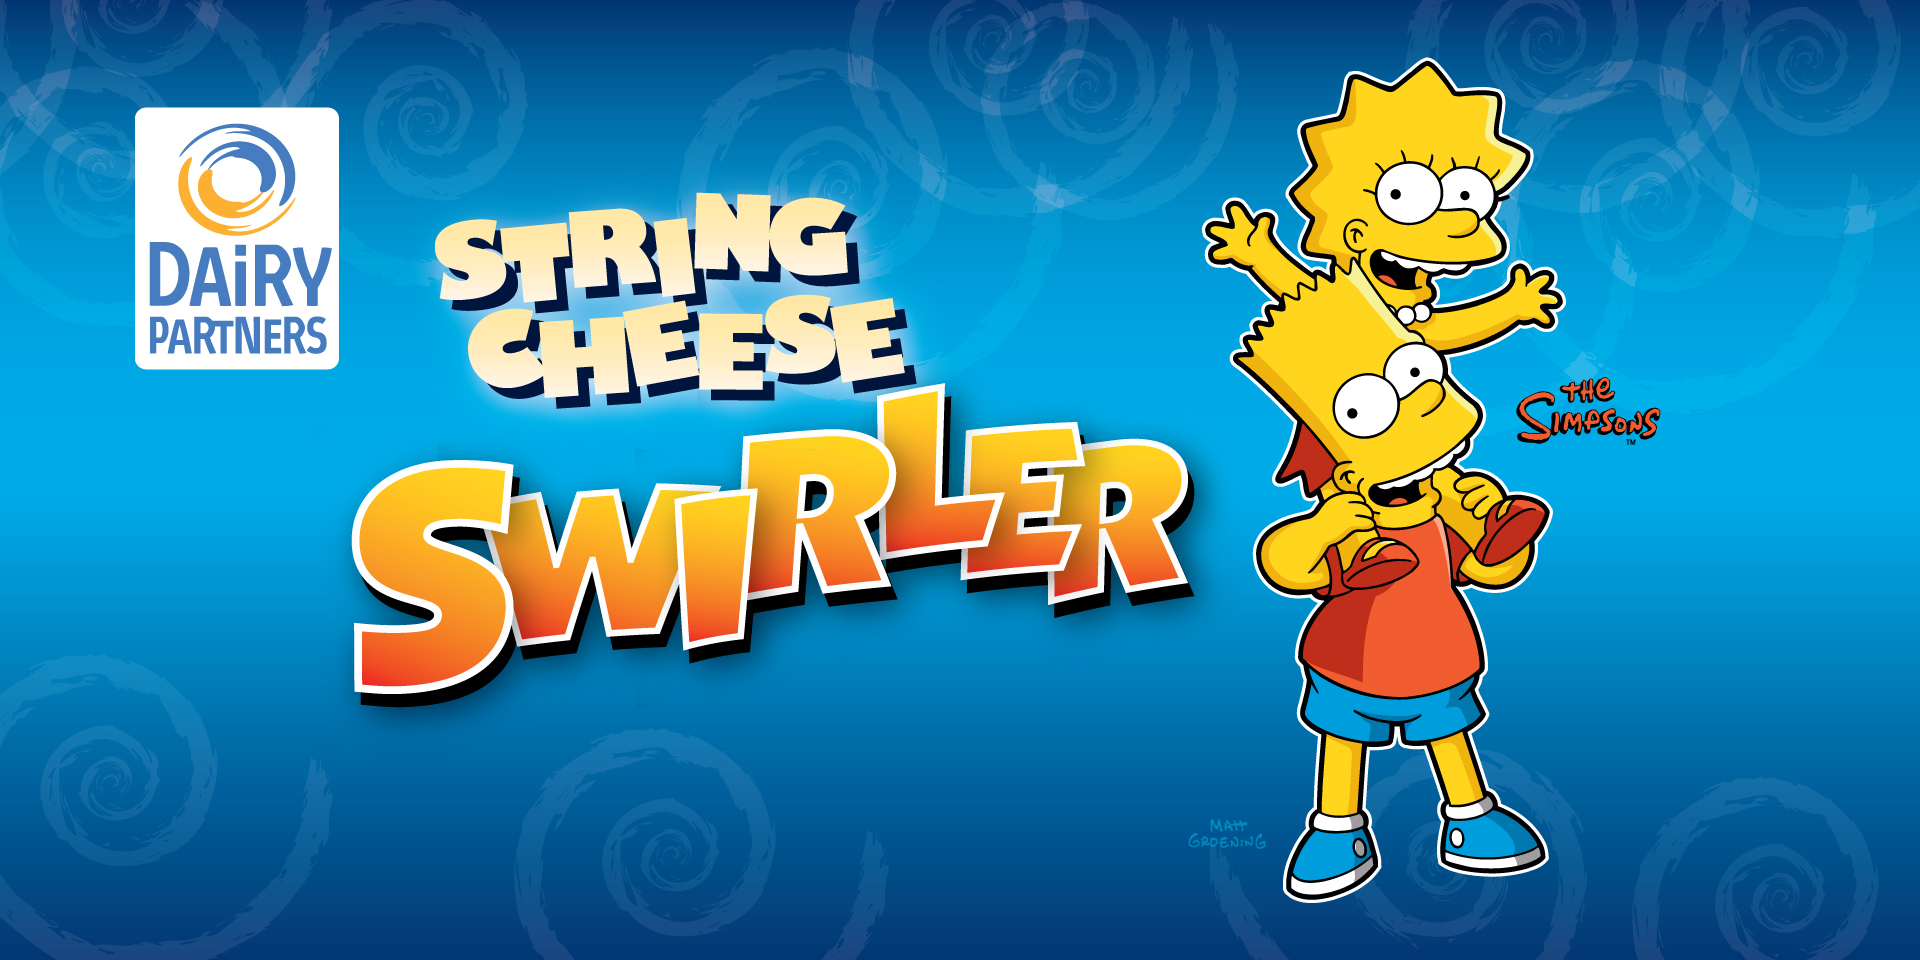 B009-2066-Simpsons-String-Cheese-Casestudy-imagery-Wide-1.jpg